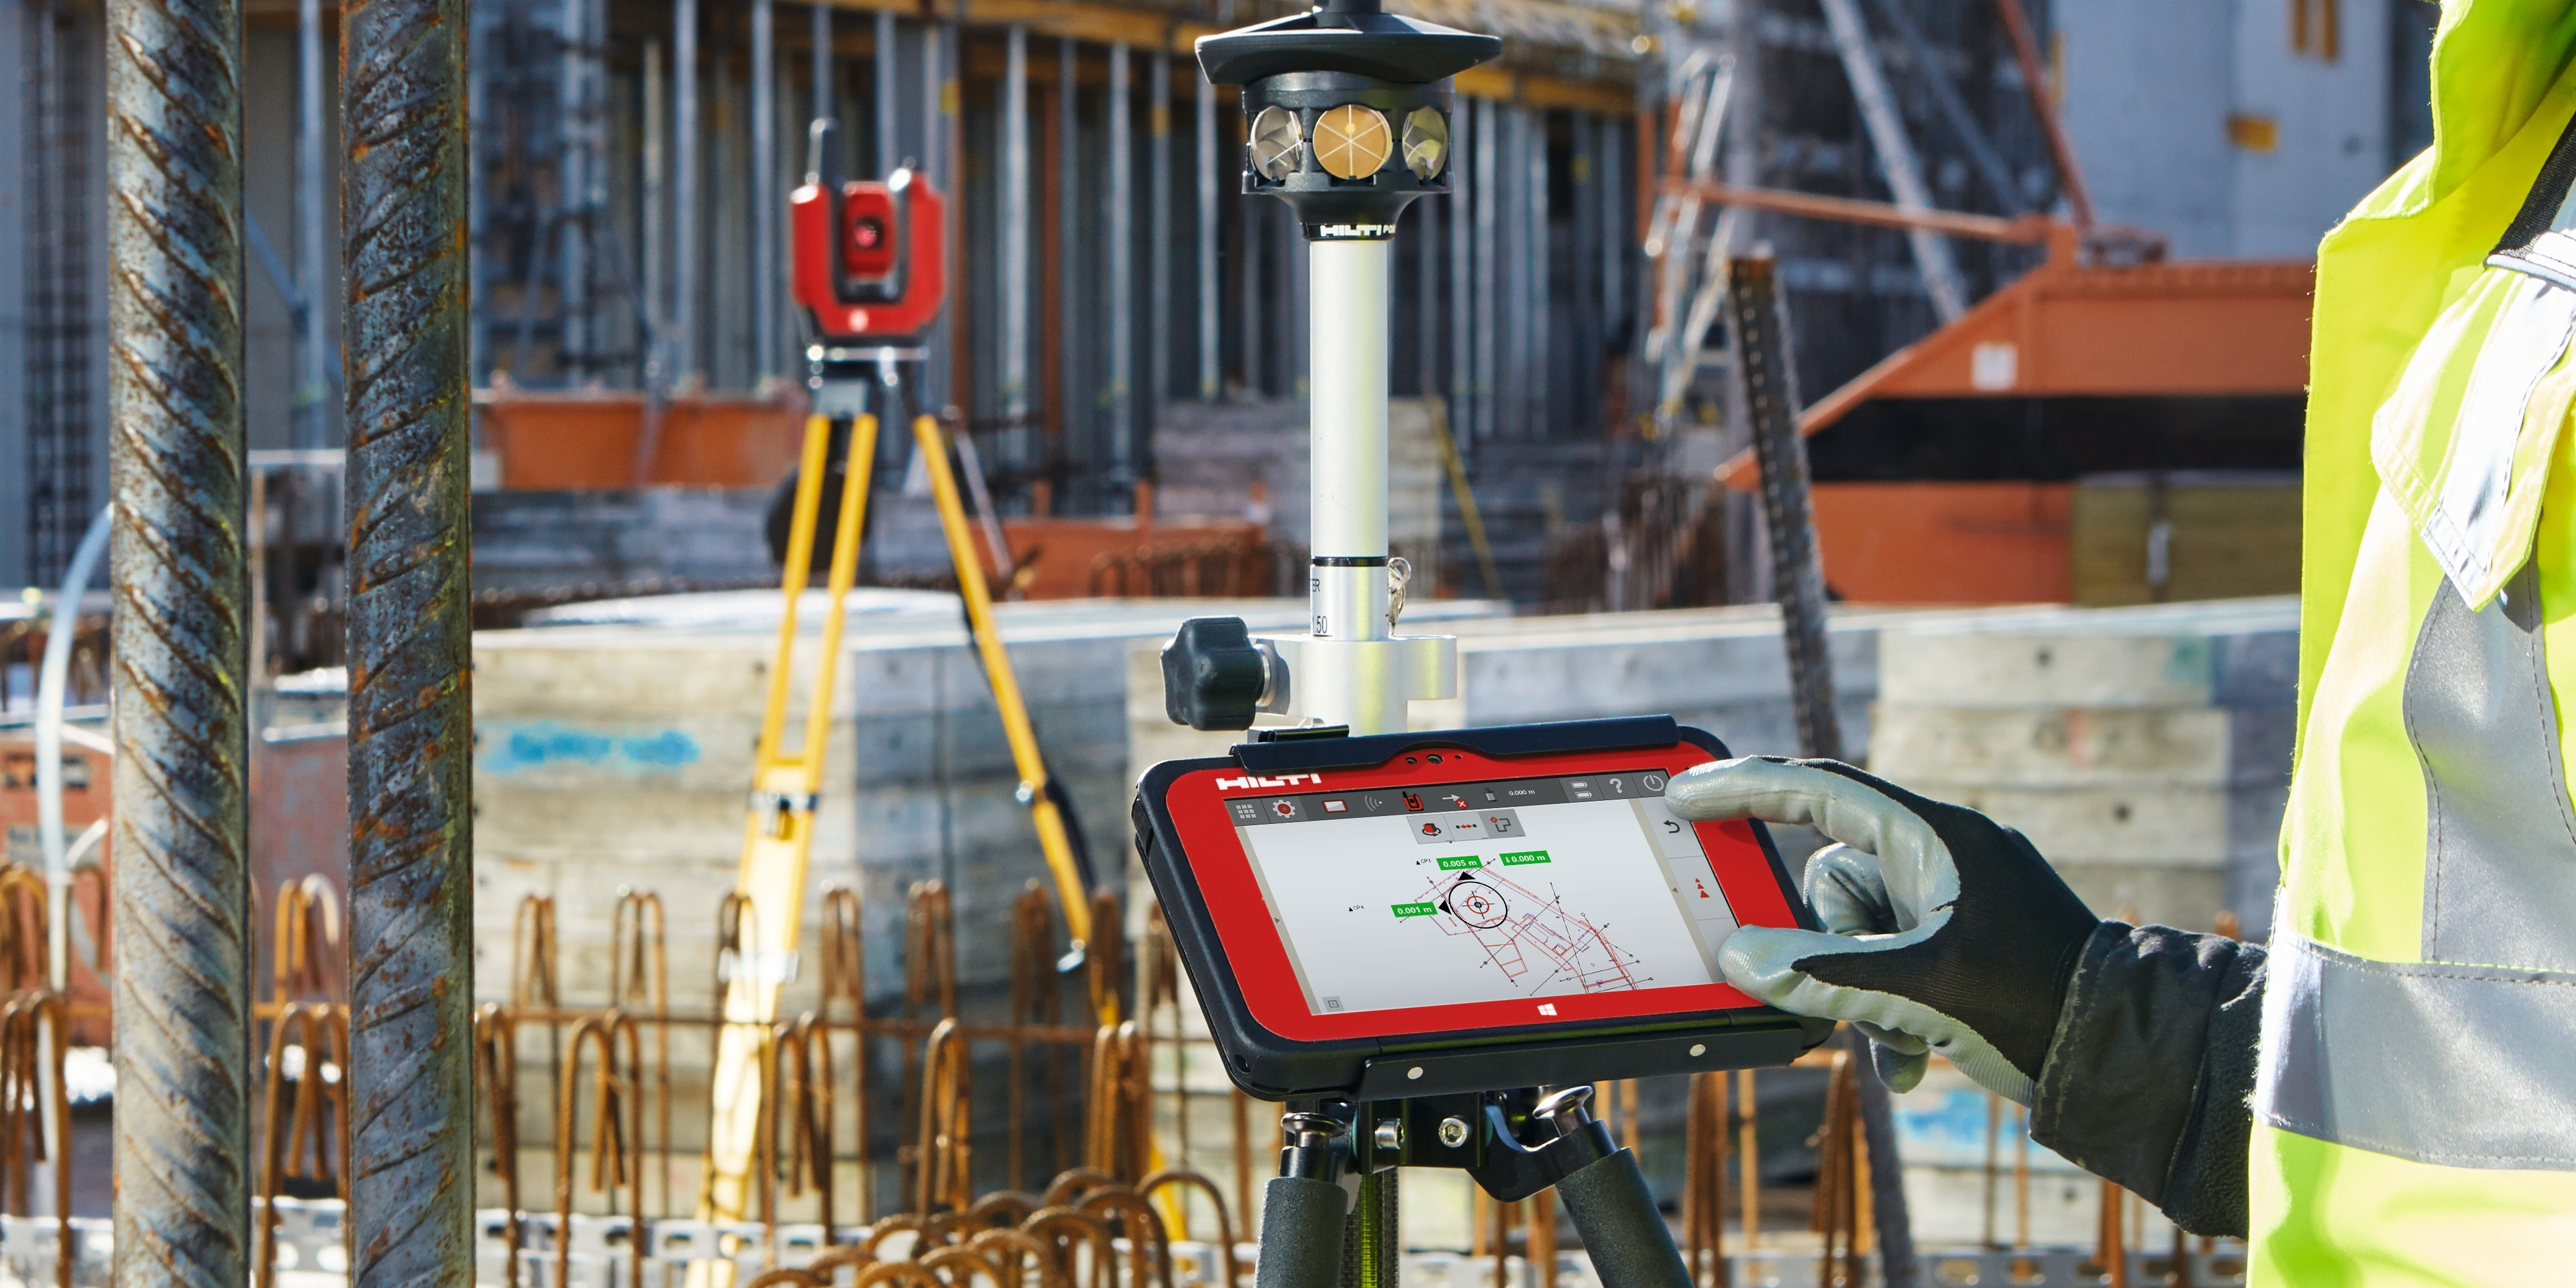 Construction worker using BIM-compatible layout tool to locate building elements on a jobsite